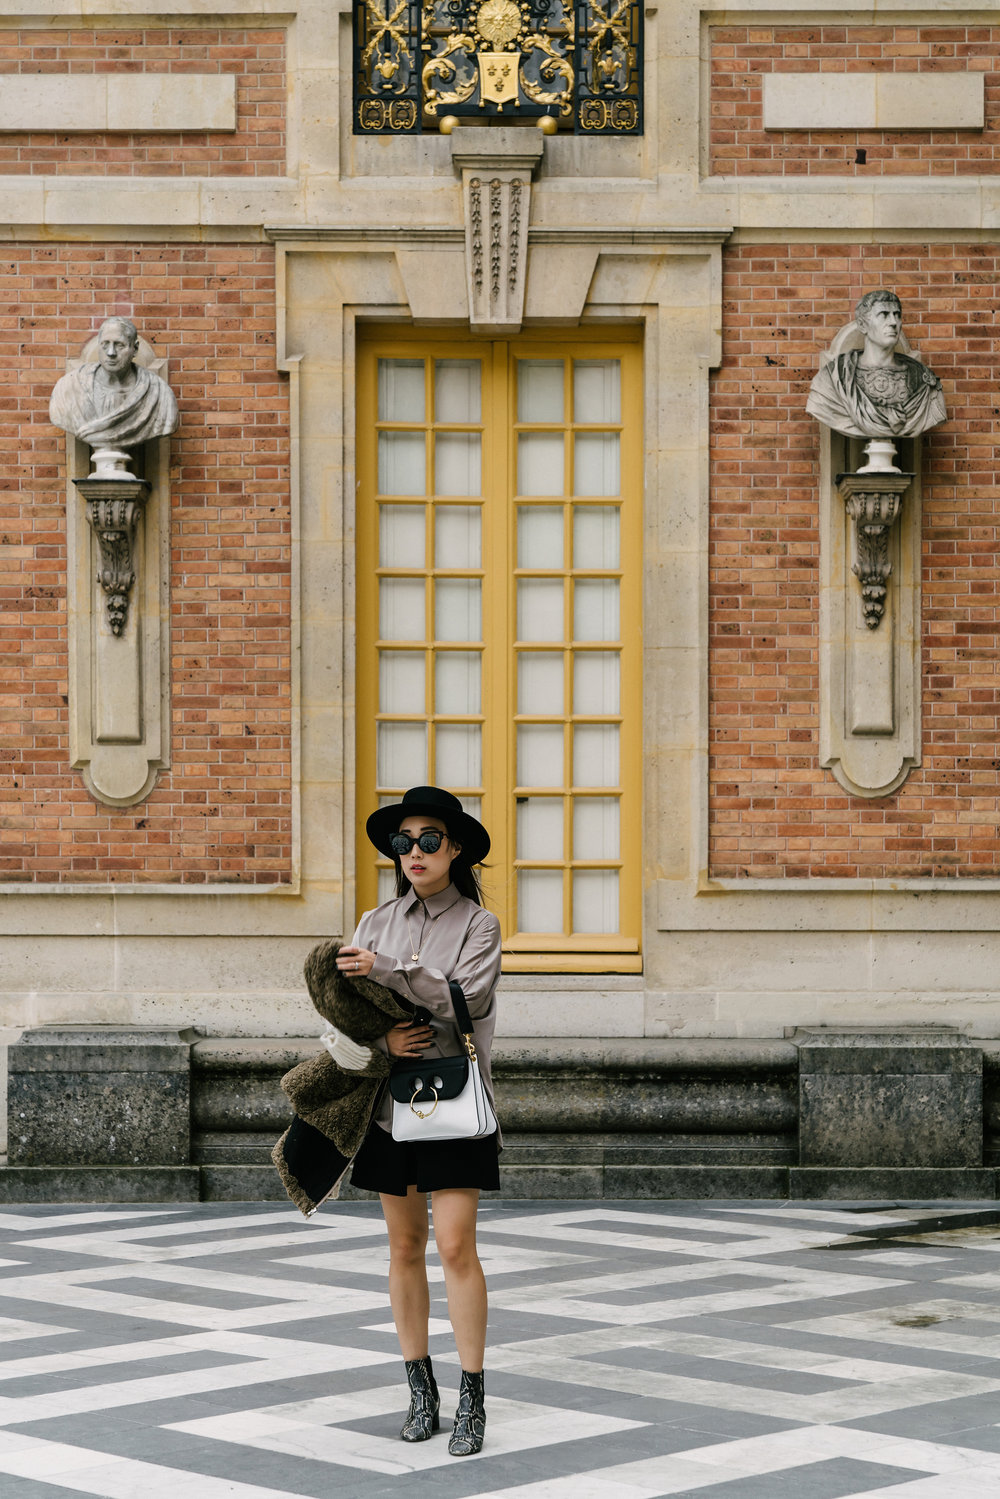 Isabel Marant Jacket, Lie Sang Bong Top, Balenciaga Skirt, Isabel Marant Boots, J.W.Anderson Bag, Janessa Leone Hat, Fendi Sunglasses, Cartier Necklace